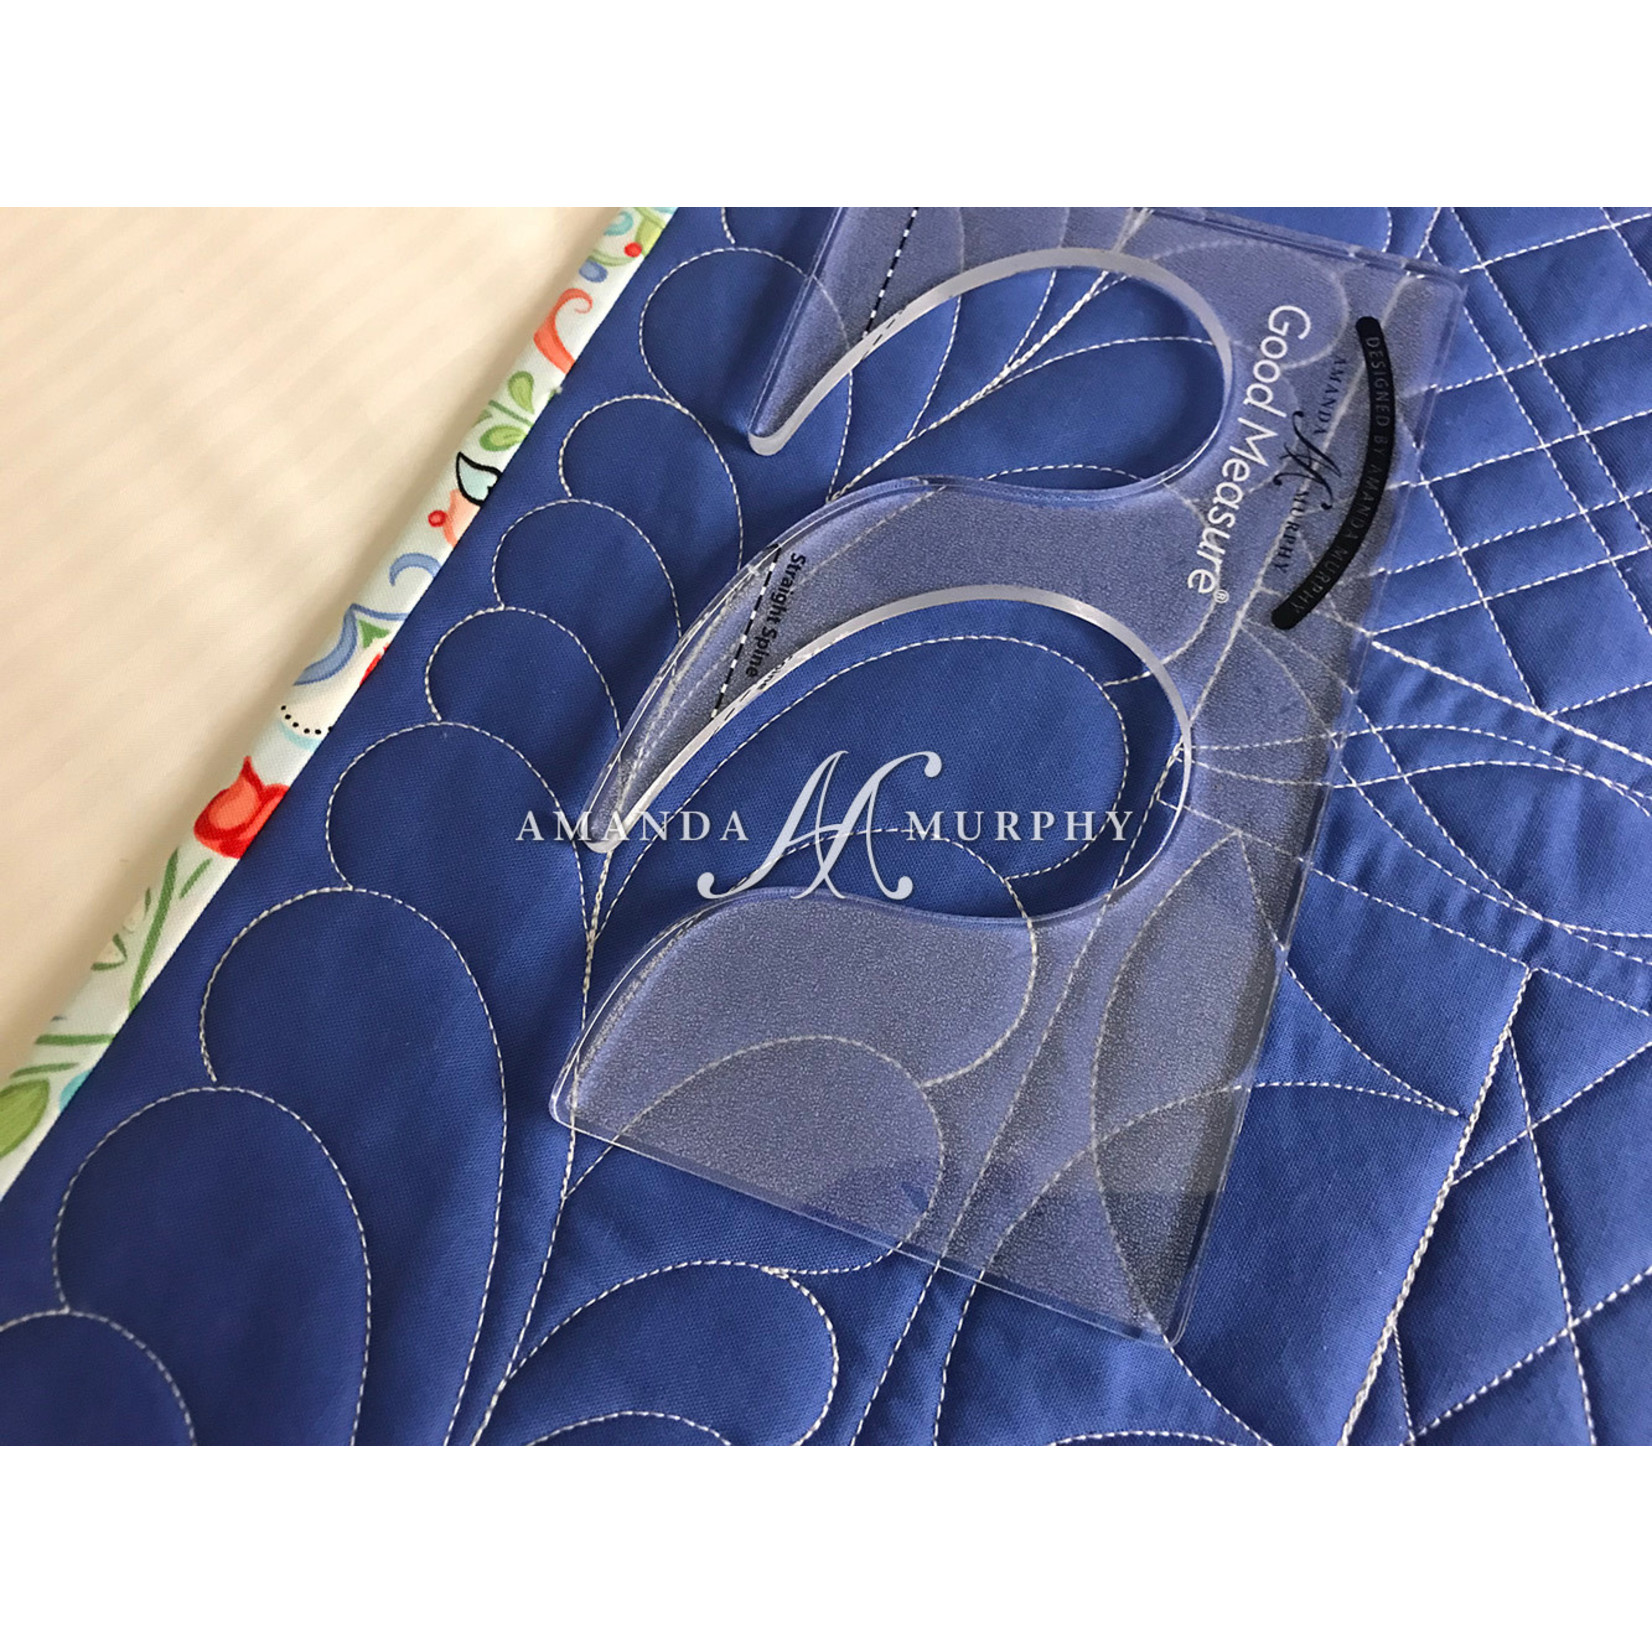 Good Measure QuiltLiniaal - Every Feather Plume set of 4 - High Shank